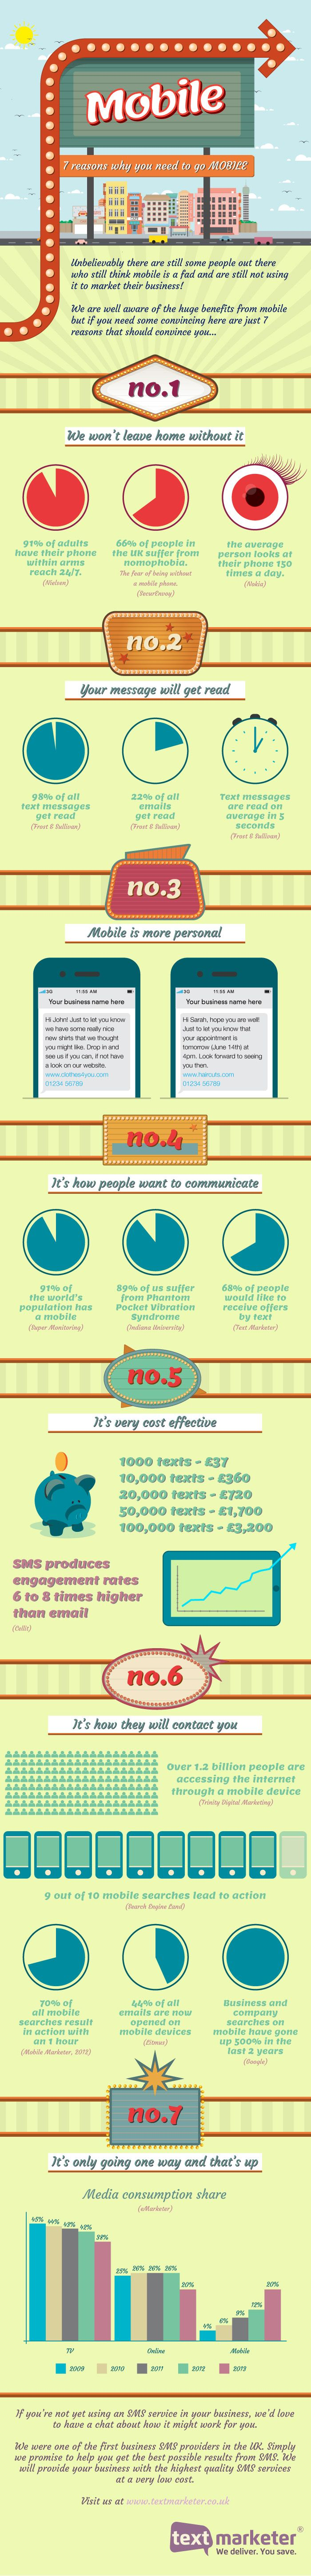 7 Reasons You Need to Go Mobile [INFOGRAPHIC] | Marketing Mojo for Small Business #OsnLikesIt #ForInspiration #Infographic